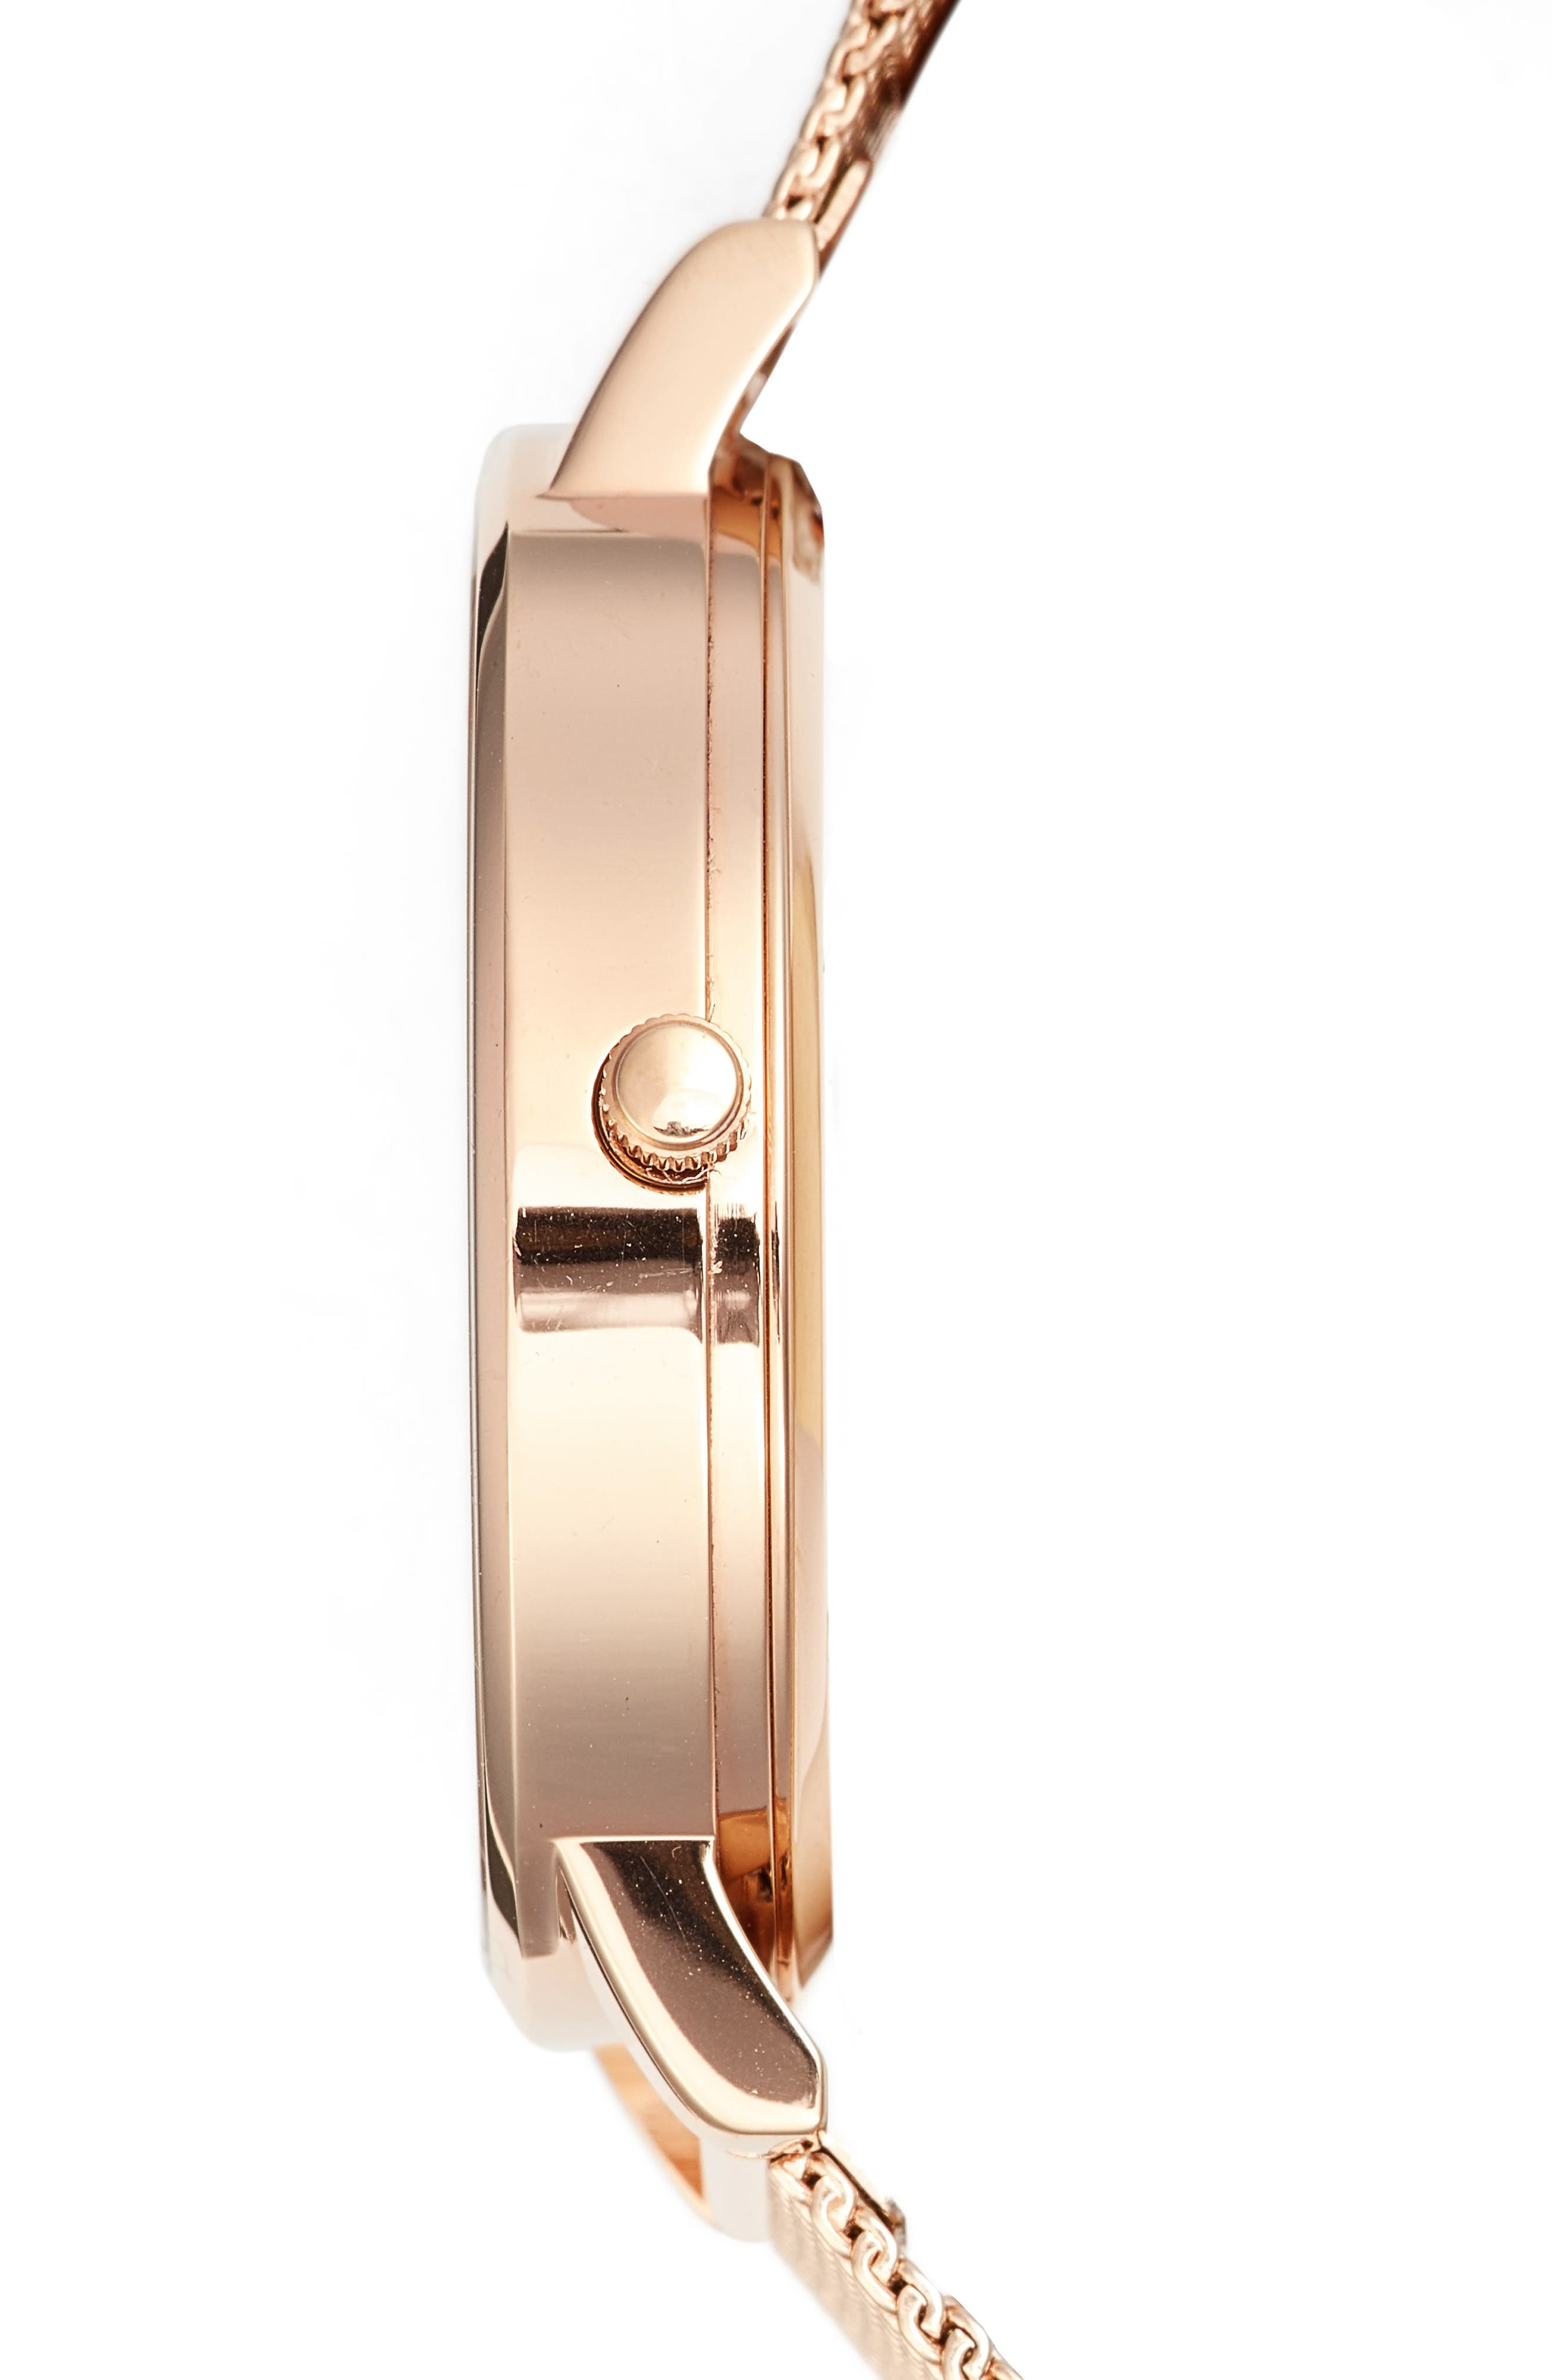 OLIVIA BURTON, Oliva Burton Abstract Florals Mesh Bracelet Watch, 38mm, Alternate thumbnail 4, color, ROSE GOLD